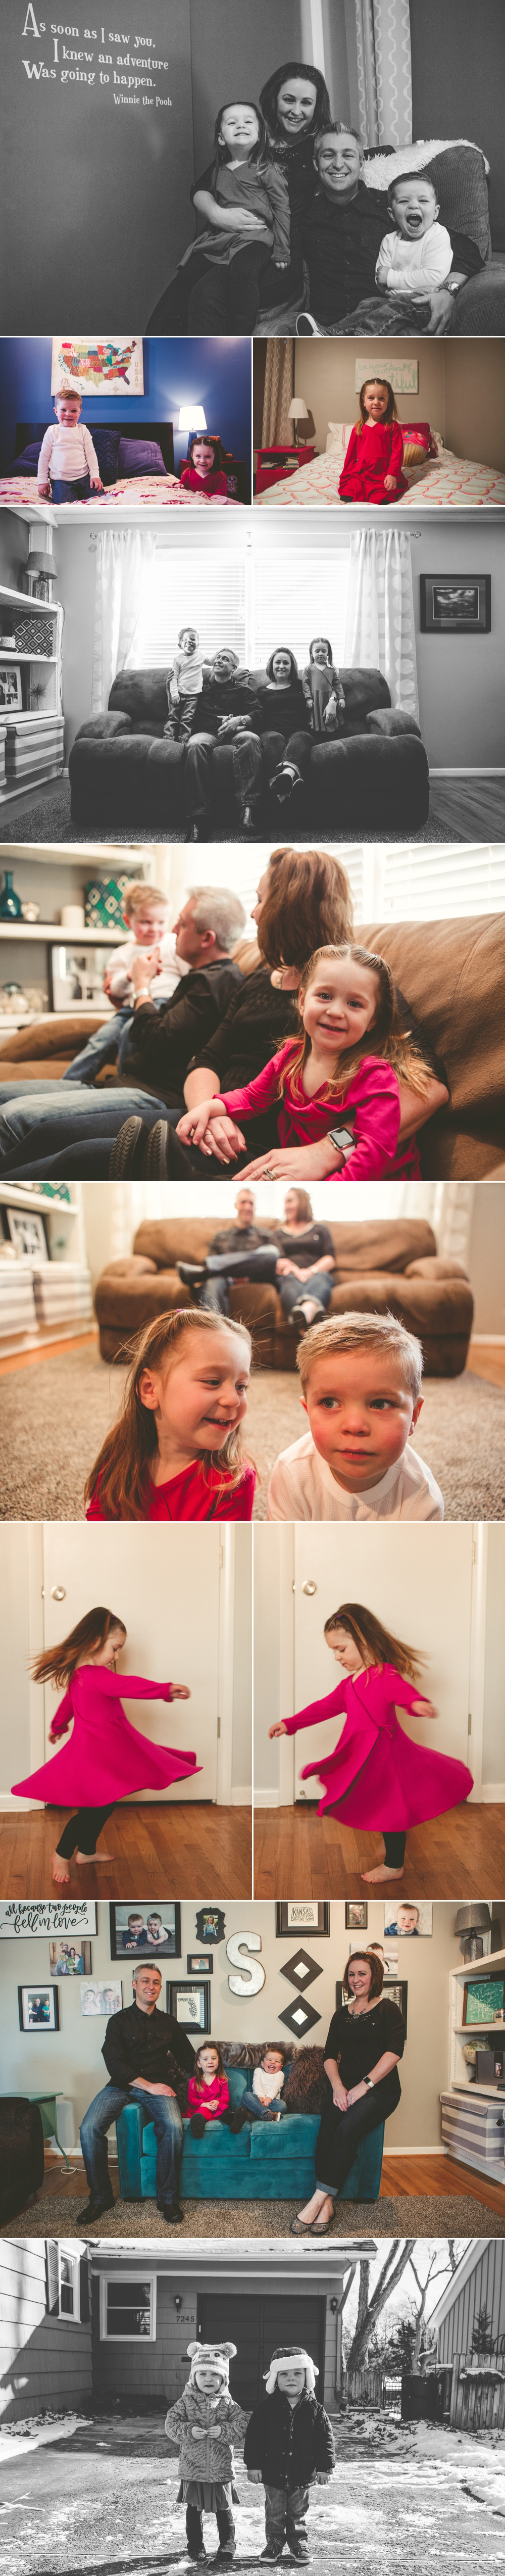 jason_domingues_photography_best_kansas_city_photography_family_portraits_lifestyle